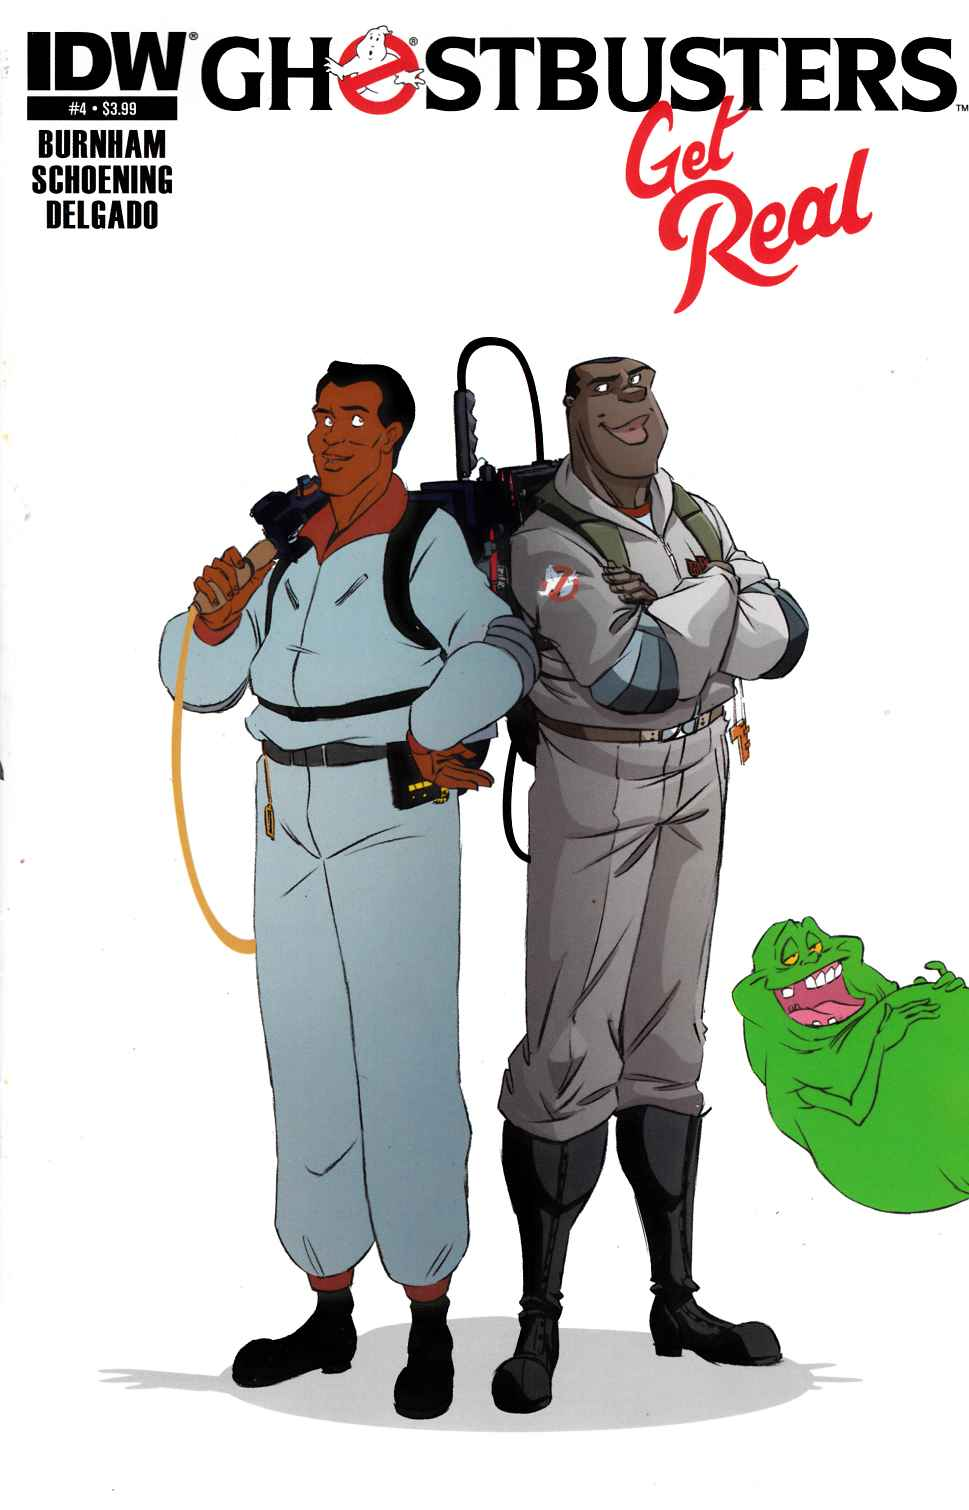 Ghostbusters Get Real #4 [IDW Comic]